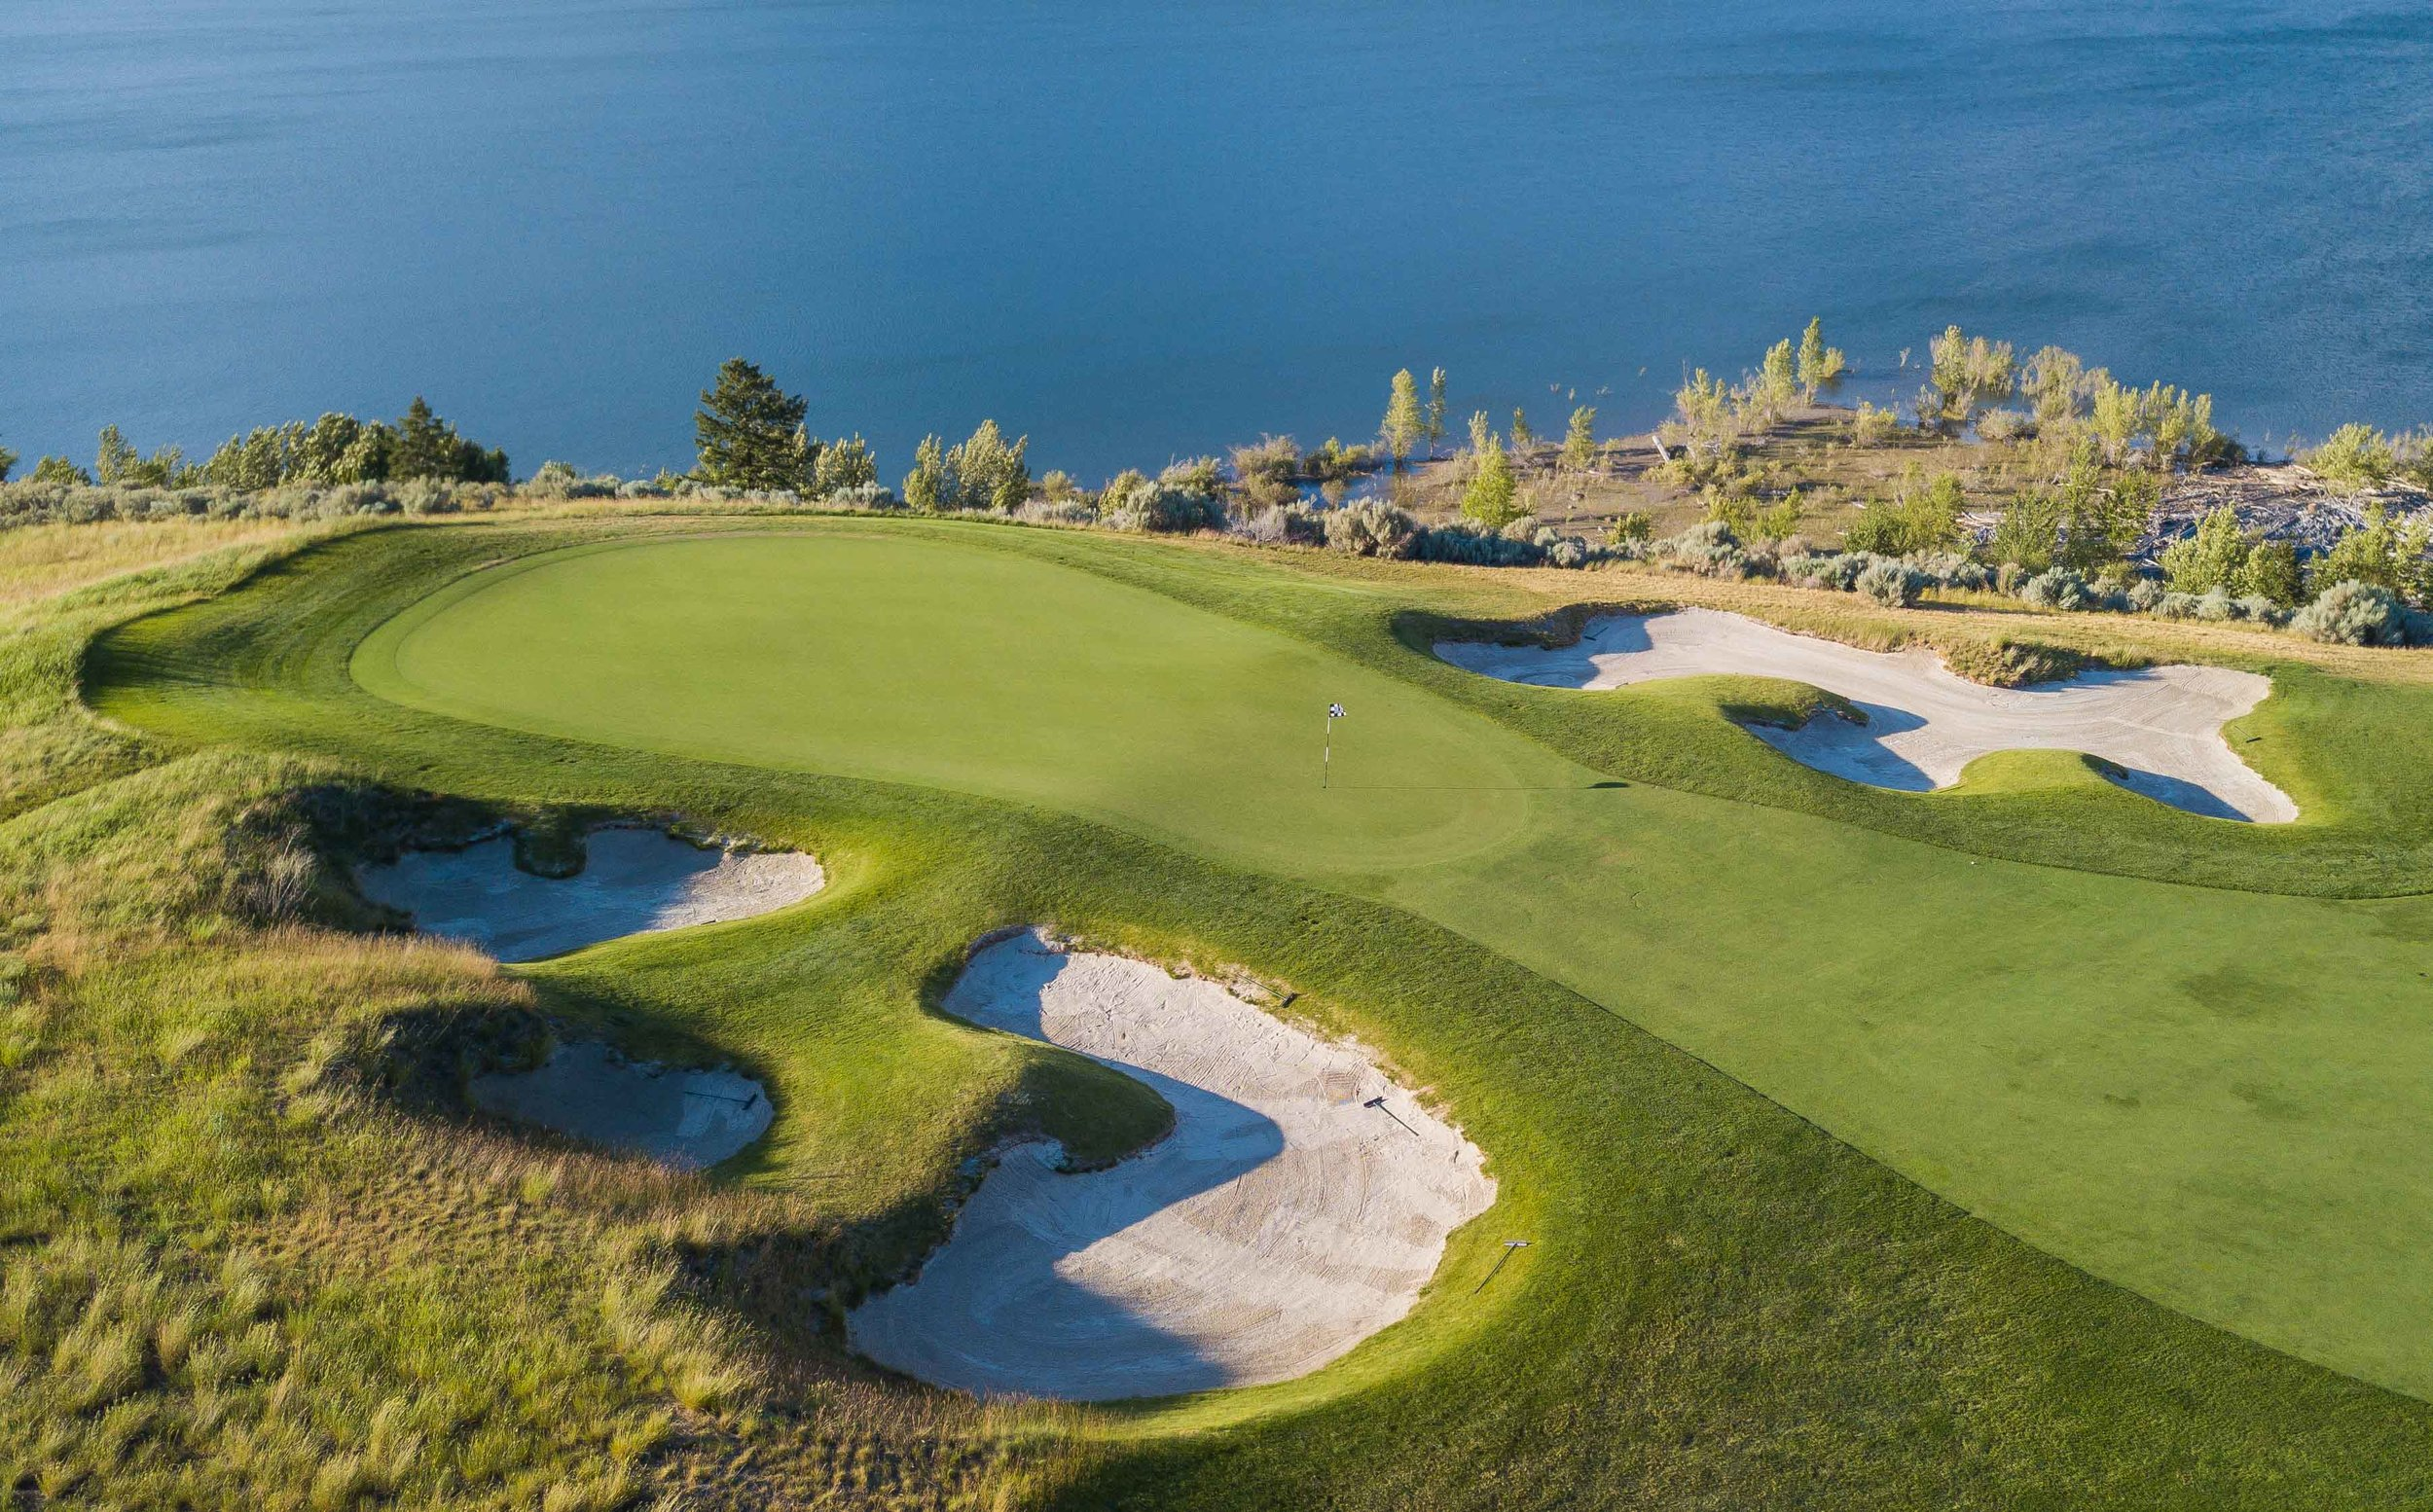 The 8th hole is a long and winding par 5 that finishes close to the water.